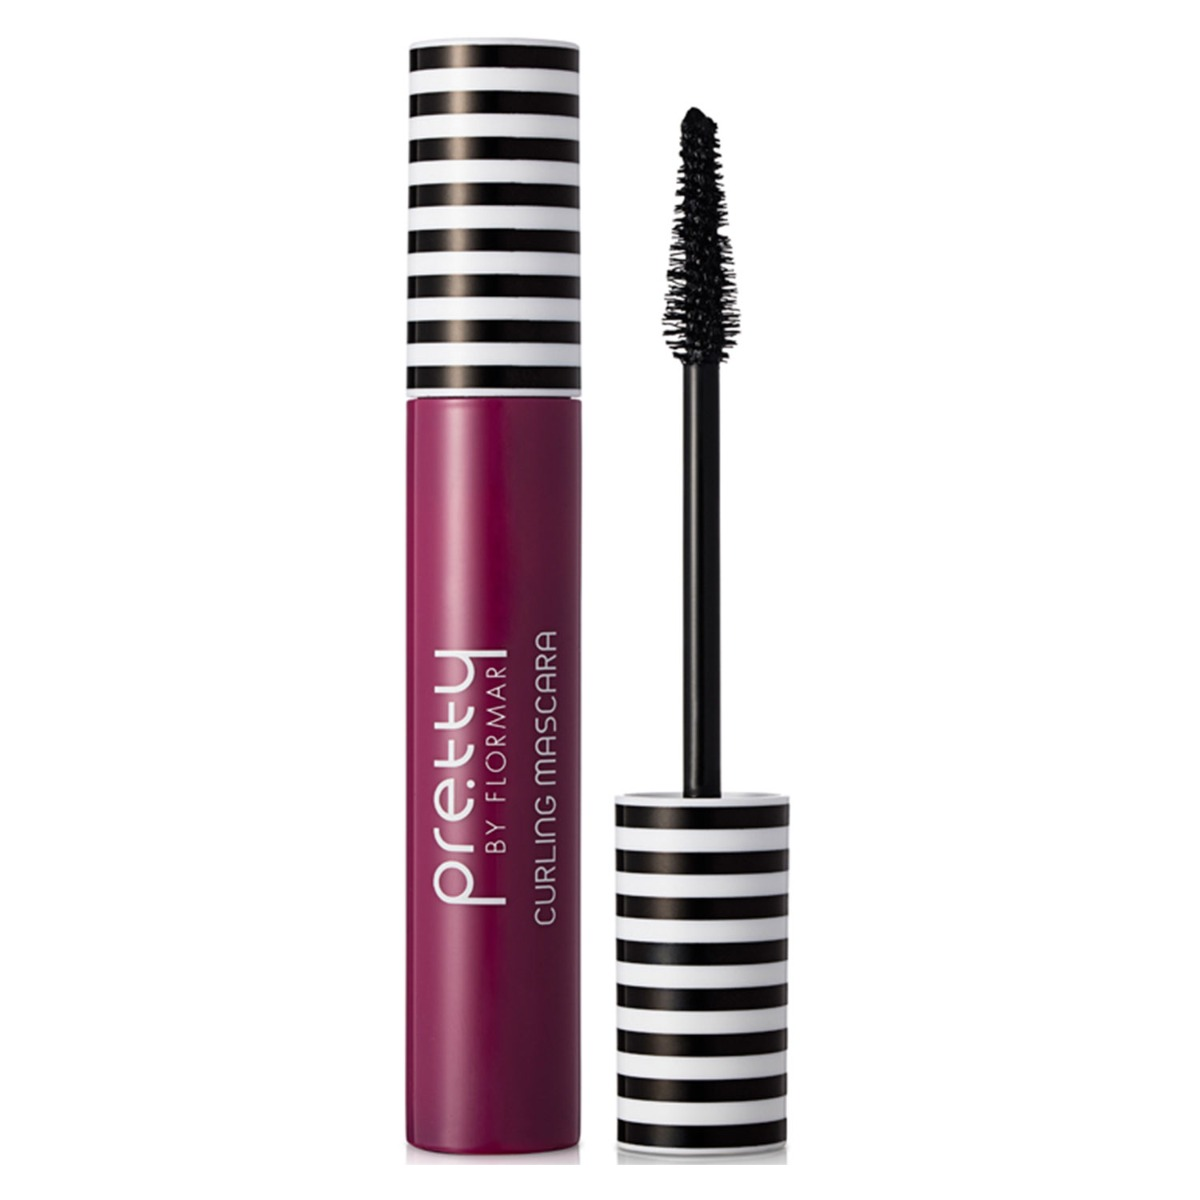 Pretty By Flormar Curling Mascara 13ml